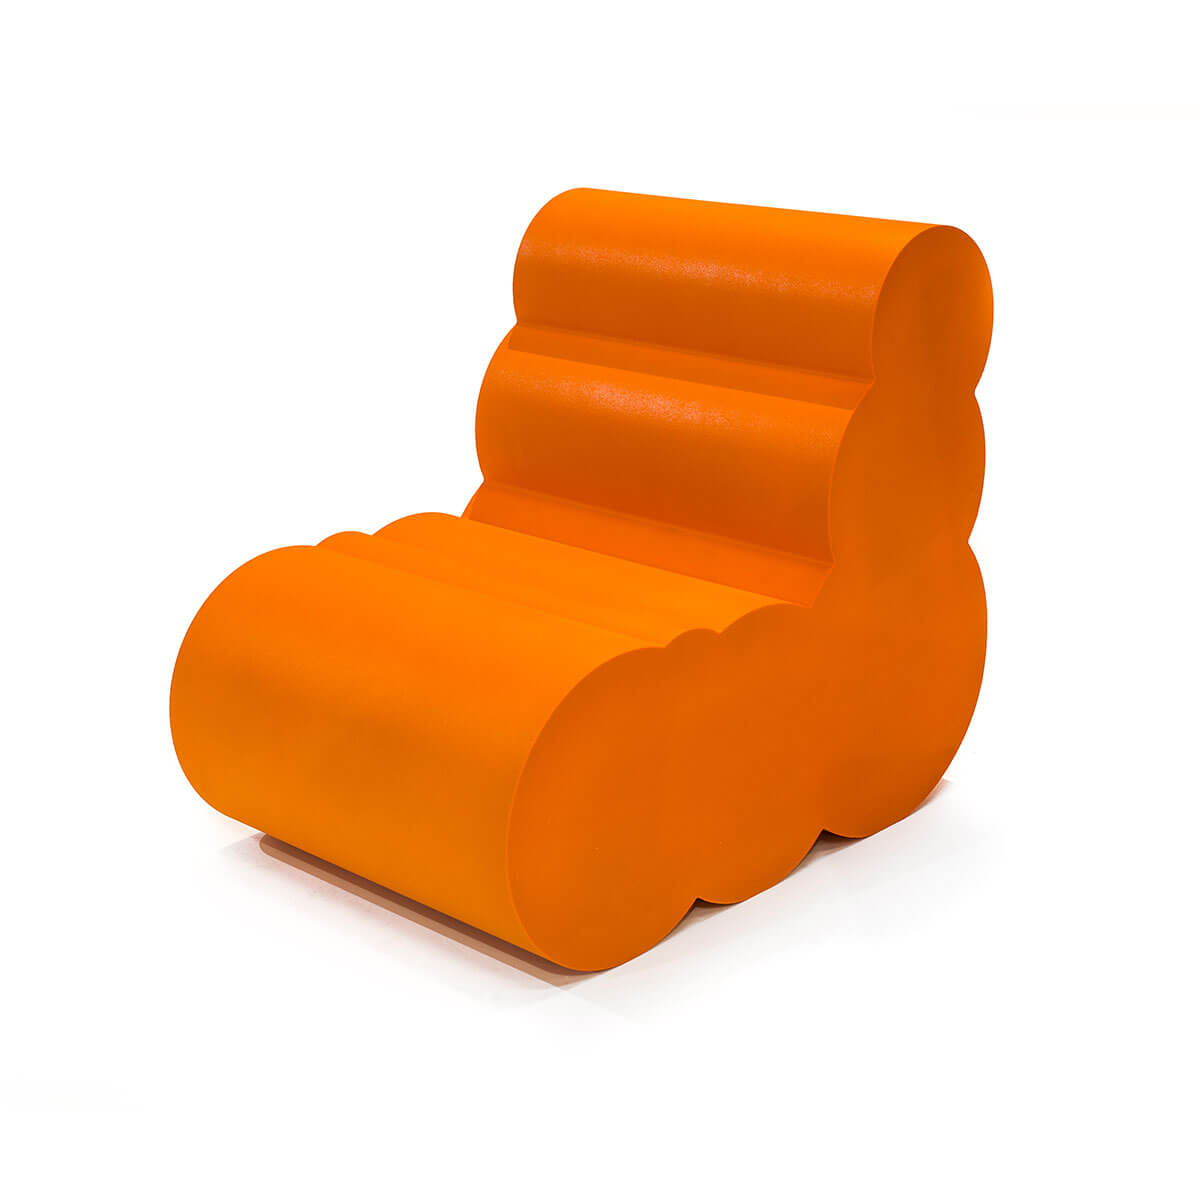 Soft Rock chair